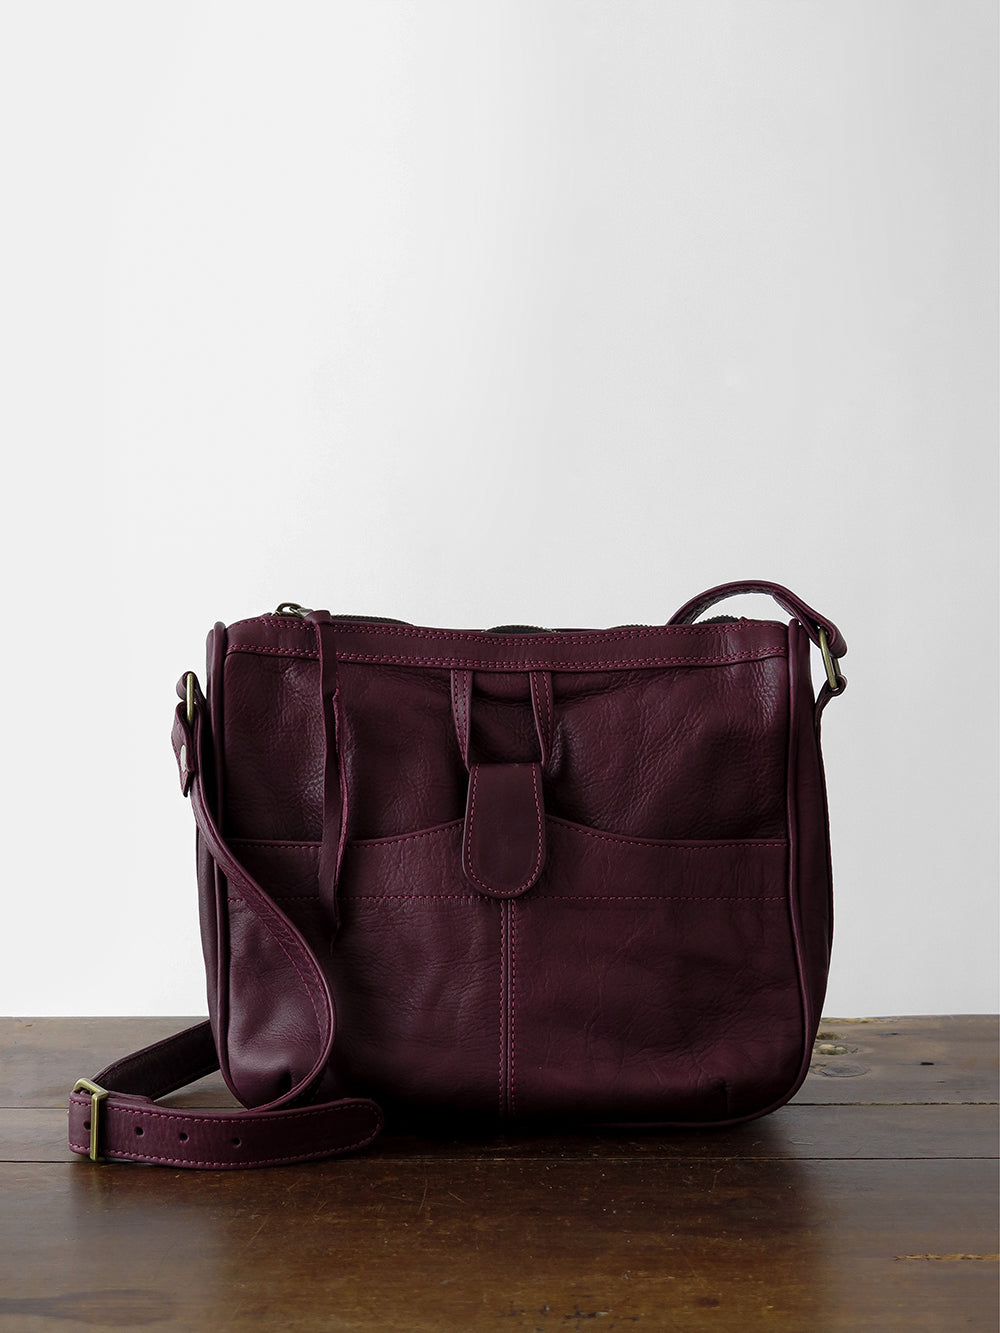 leather shoulder bag in burgundy